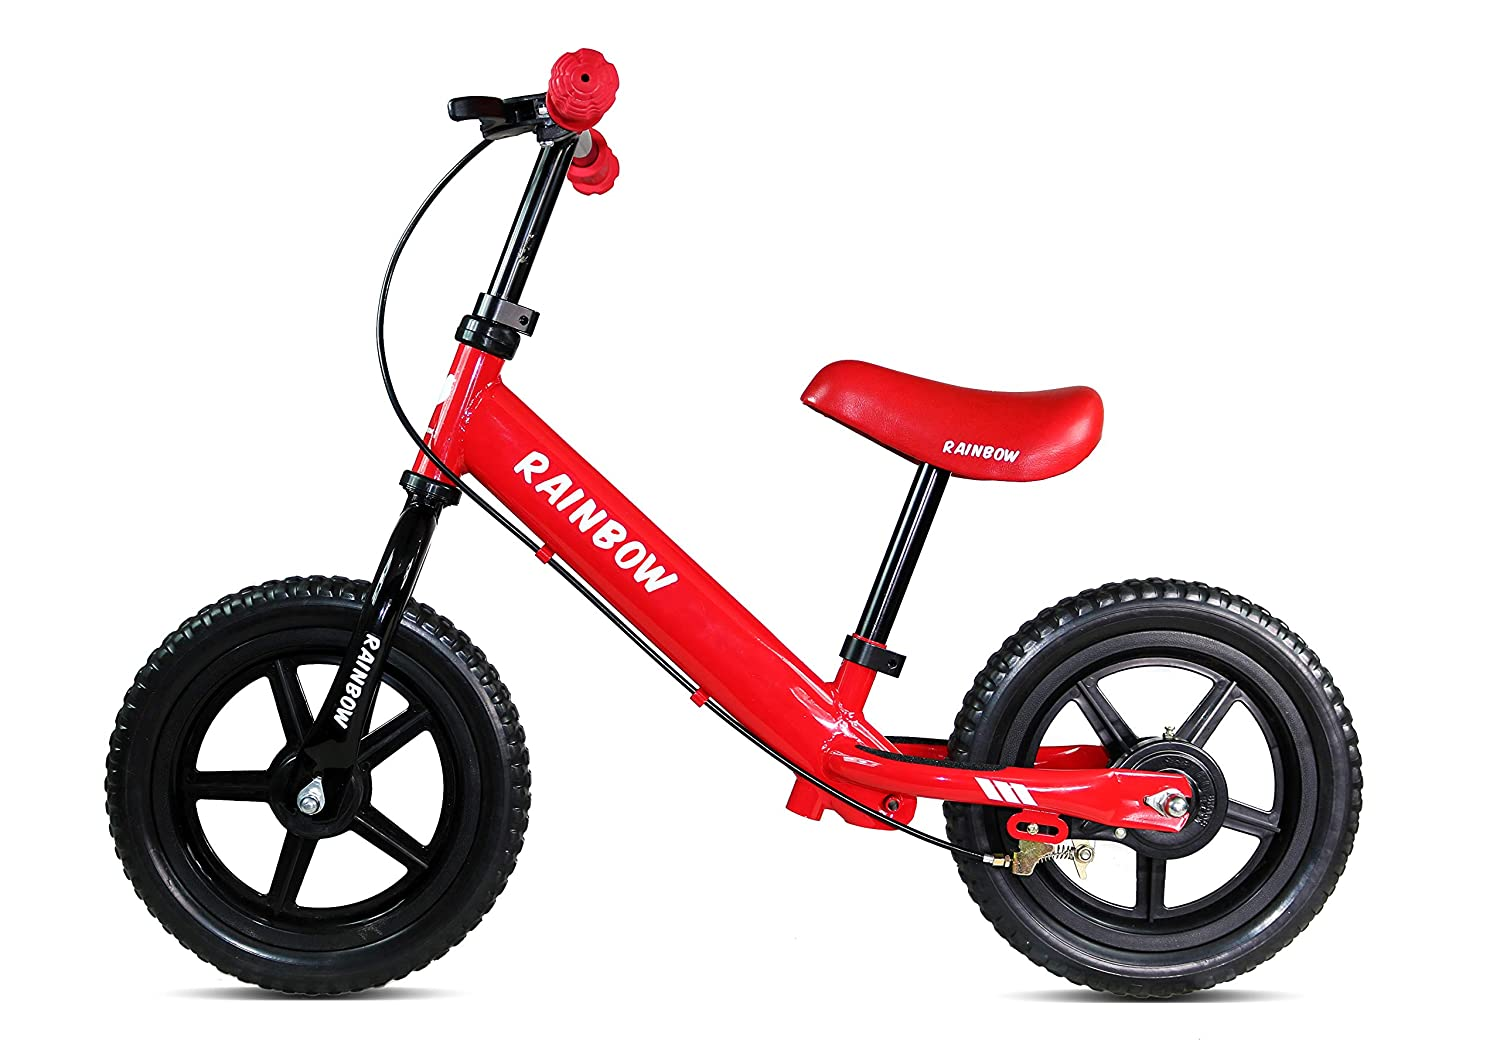 Rainbow Balance Bike for Kids 12' Wheels No-Pedals Bike for Boys & Girls 2-5 Years Old, Children Learn How to Balance Them self on a Bike Safely with Brakes